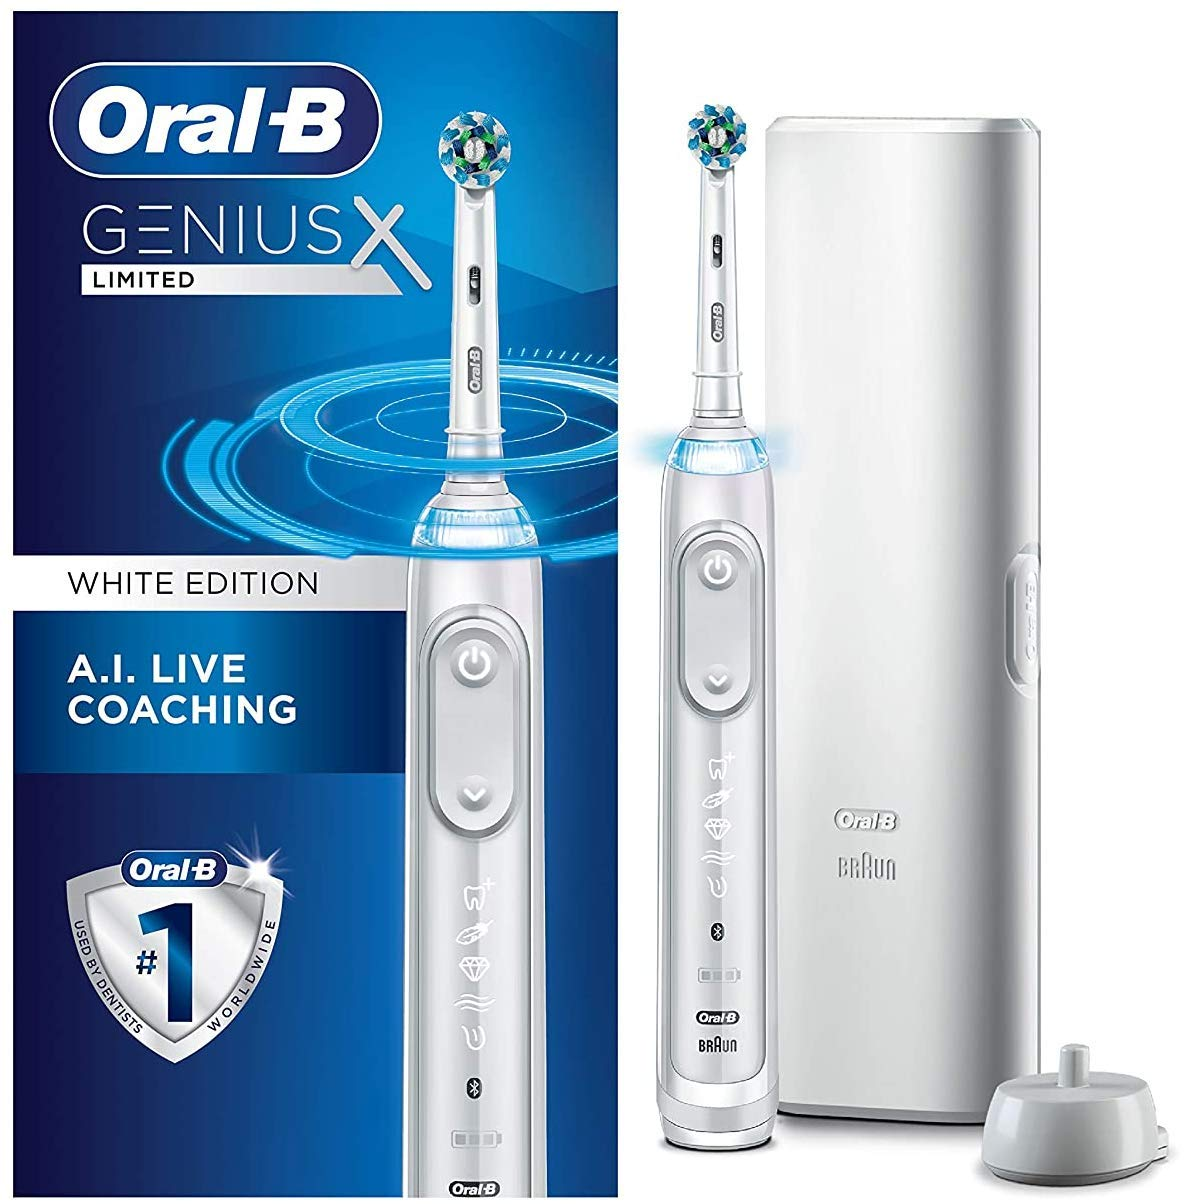 Oral-B Genius X Limited, Electric Toothbrush